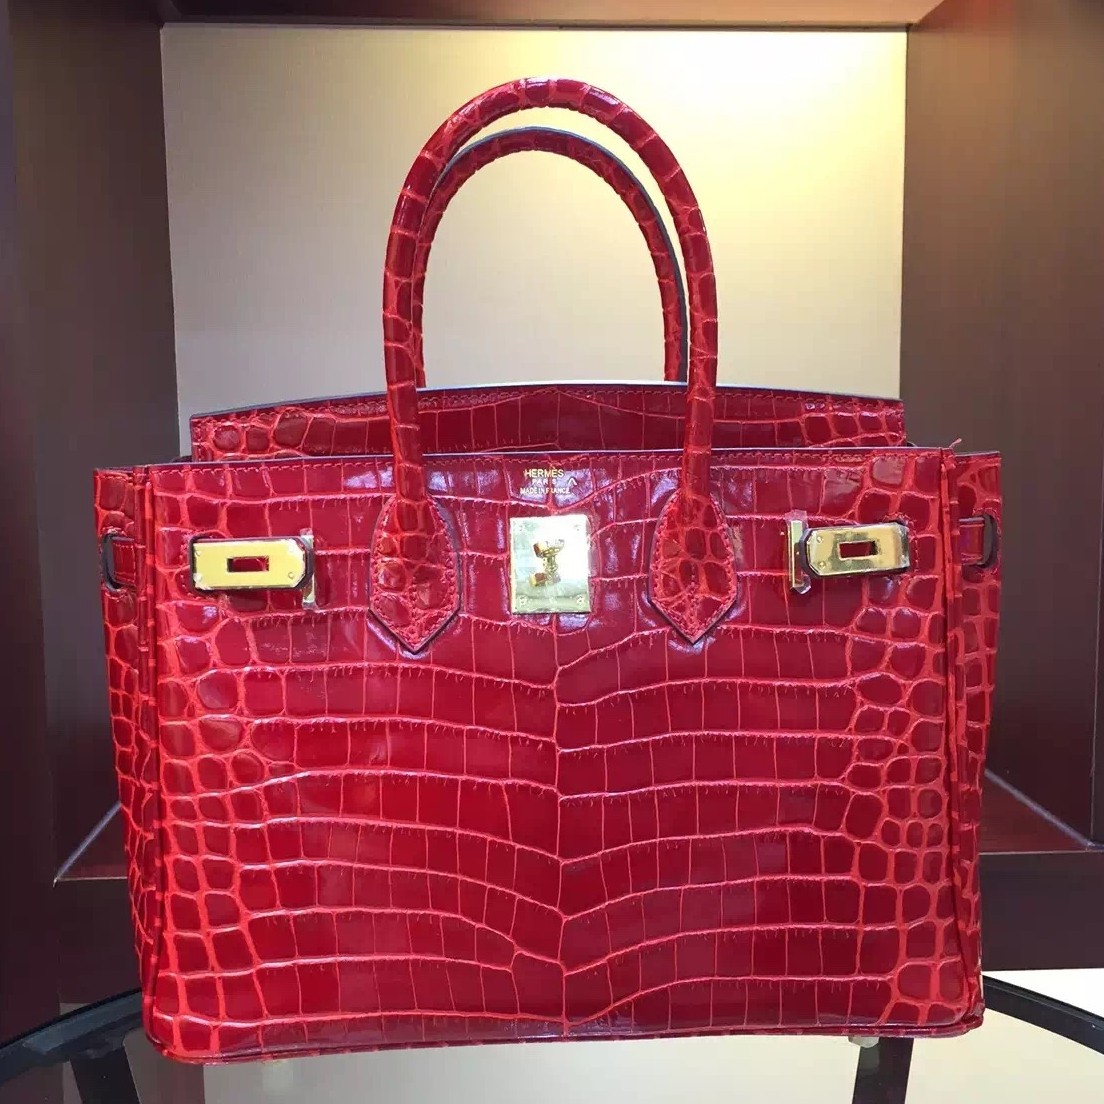 Hermes Birkin 30cm 35cm Bag In Red Crocodile Leather Replica